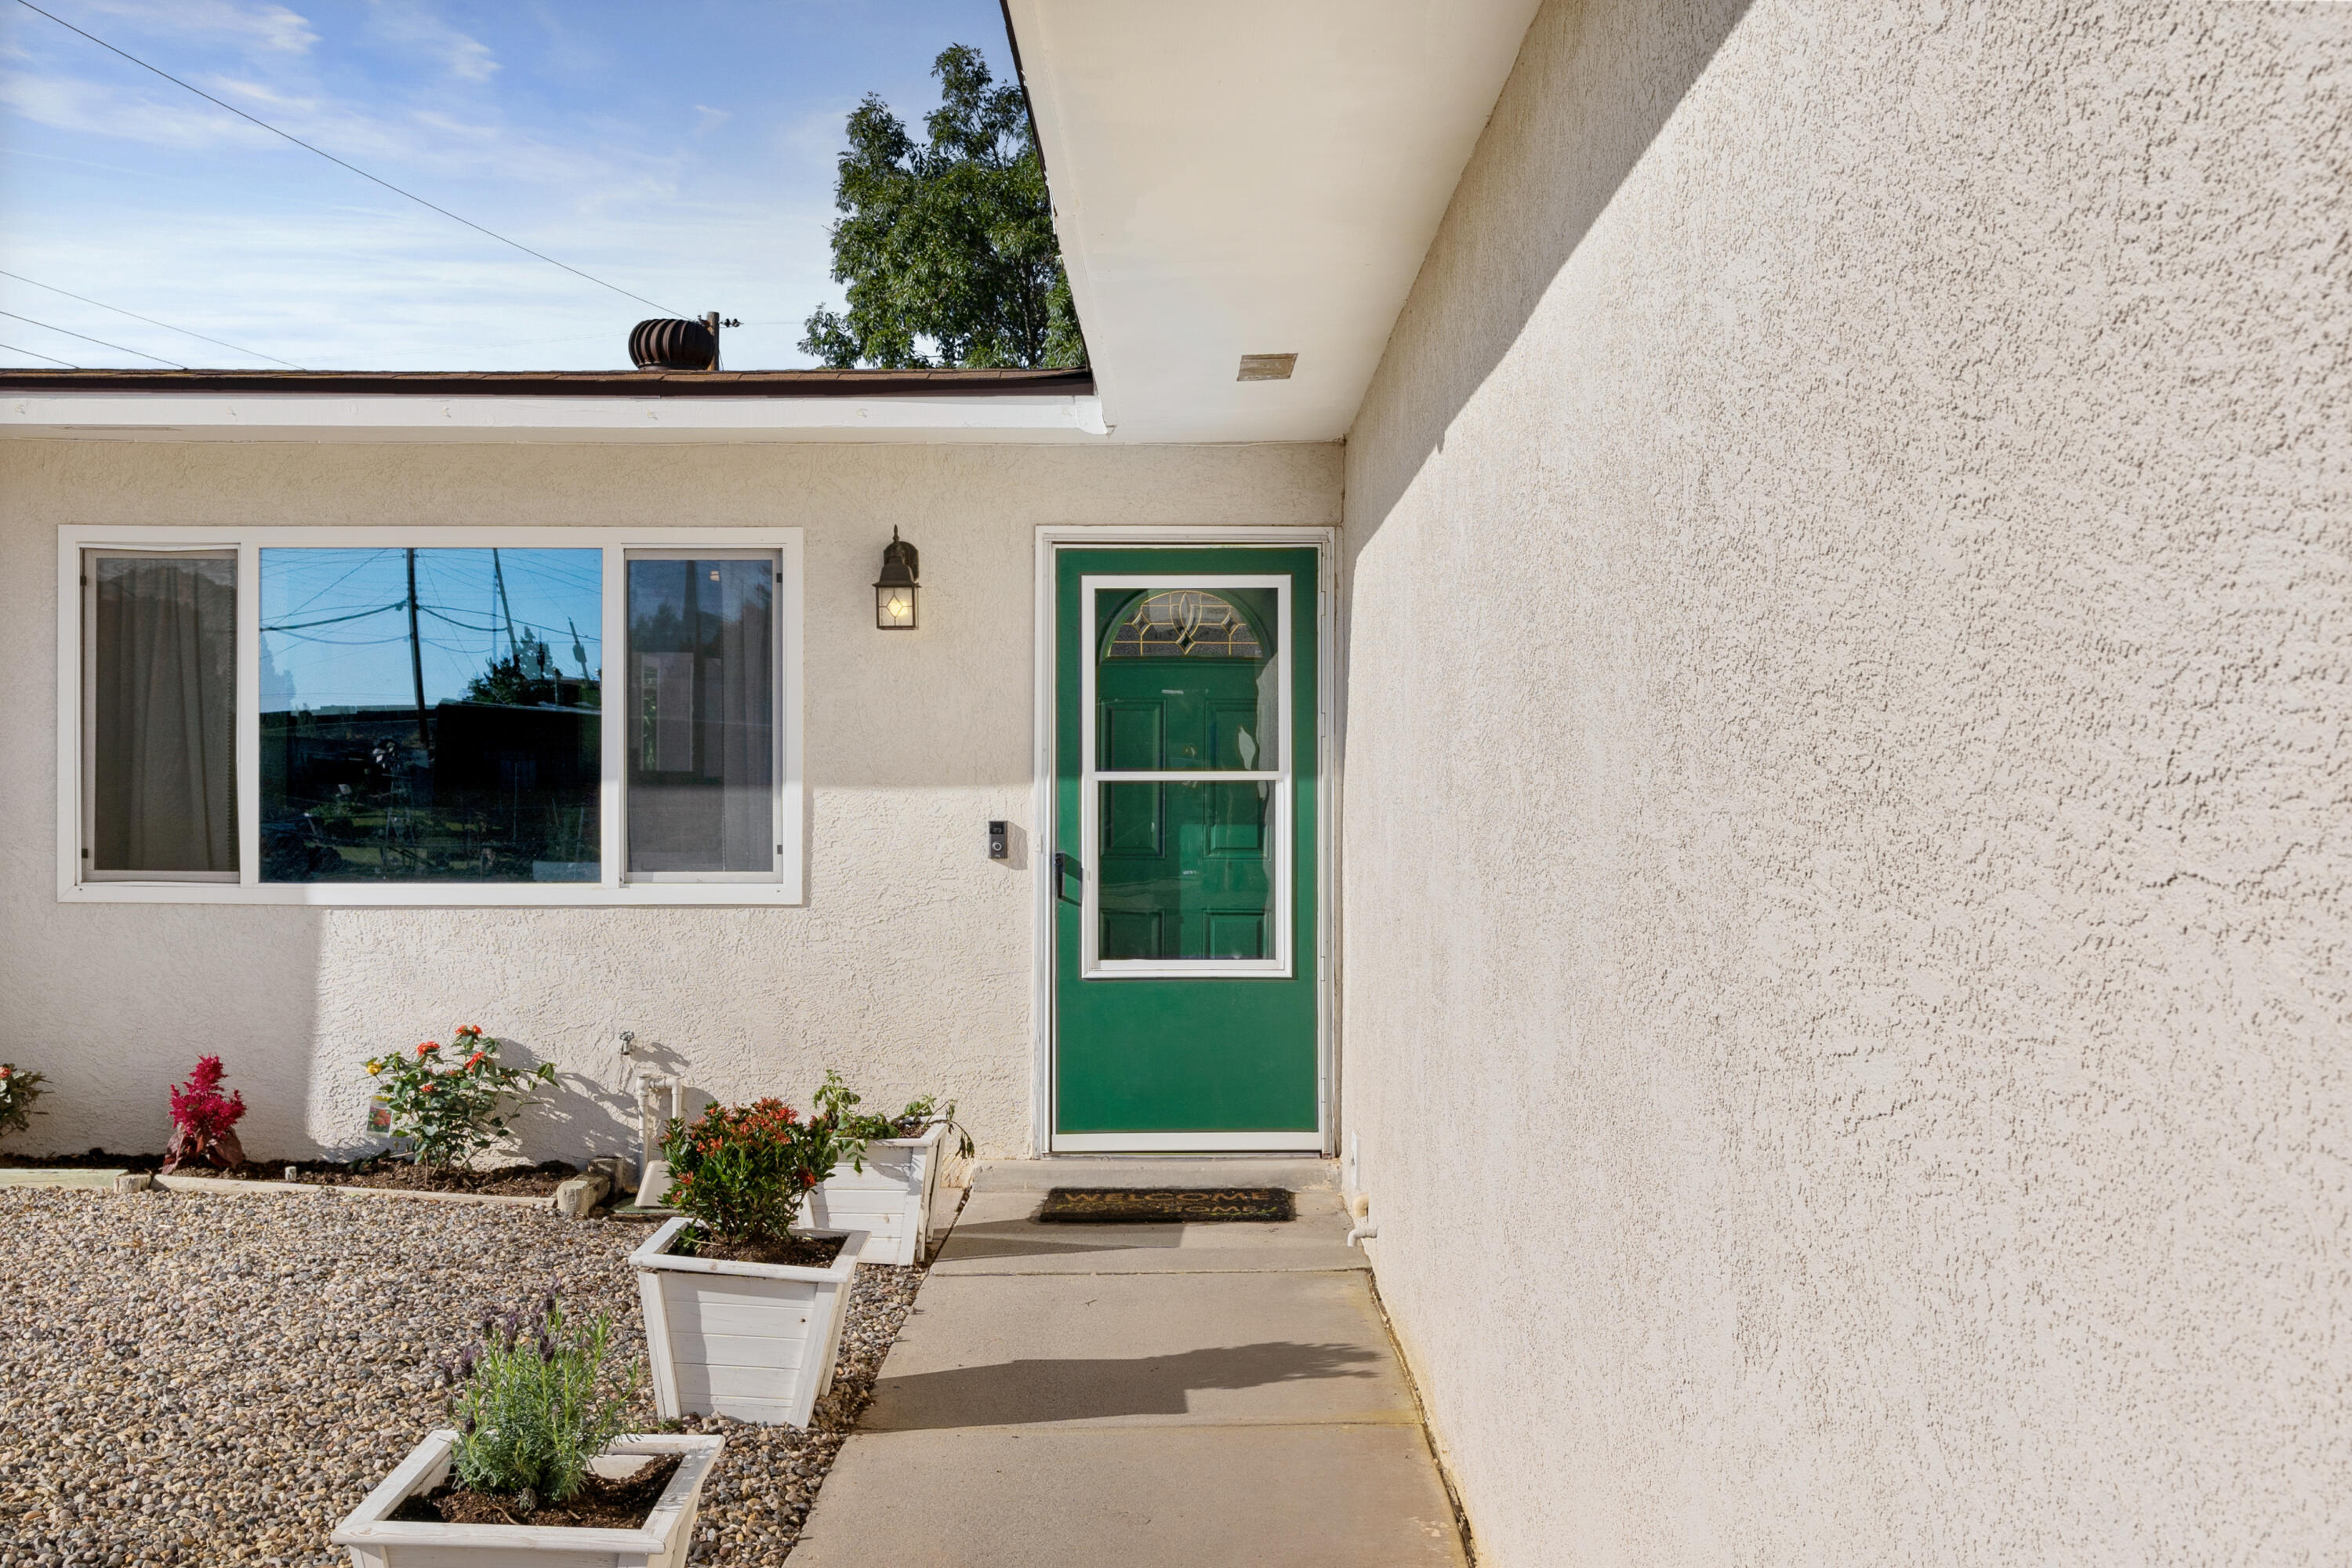 Welcome to this beautifully updated Paradise Hills property!  The layout offers 3 bedrooms, 2 bathrooms and a perfect office space.  The kitchen features updated Quartz countertops, white cabinets and slate appliances.  This quarter acre lot provides backyard access (RV parking), a super fun finished shed (with electric) and a perfect patio area for outdoor entertainment.  The home was converted to refrigerated air in May 2021 and the roof was replaced in December of 2017.  Contact your favorite Realtor for a showing!